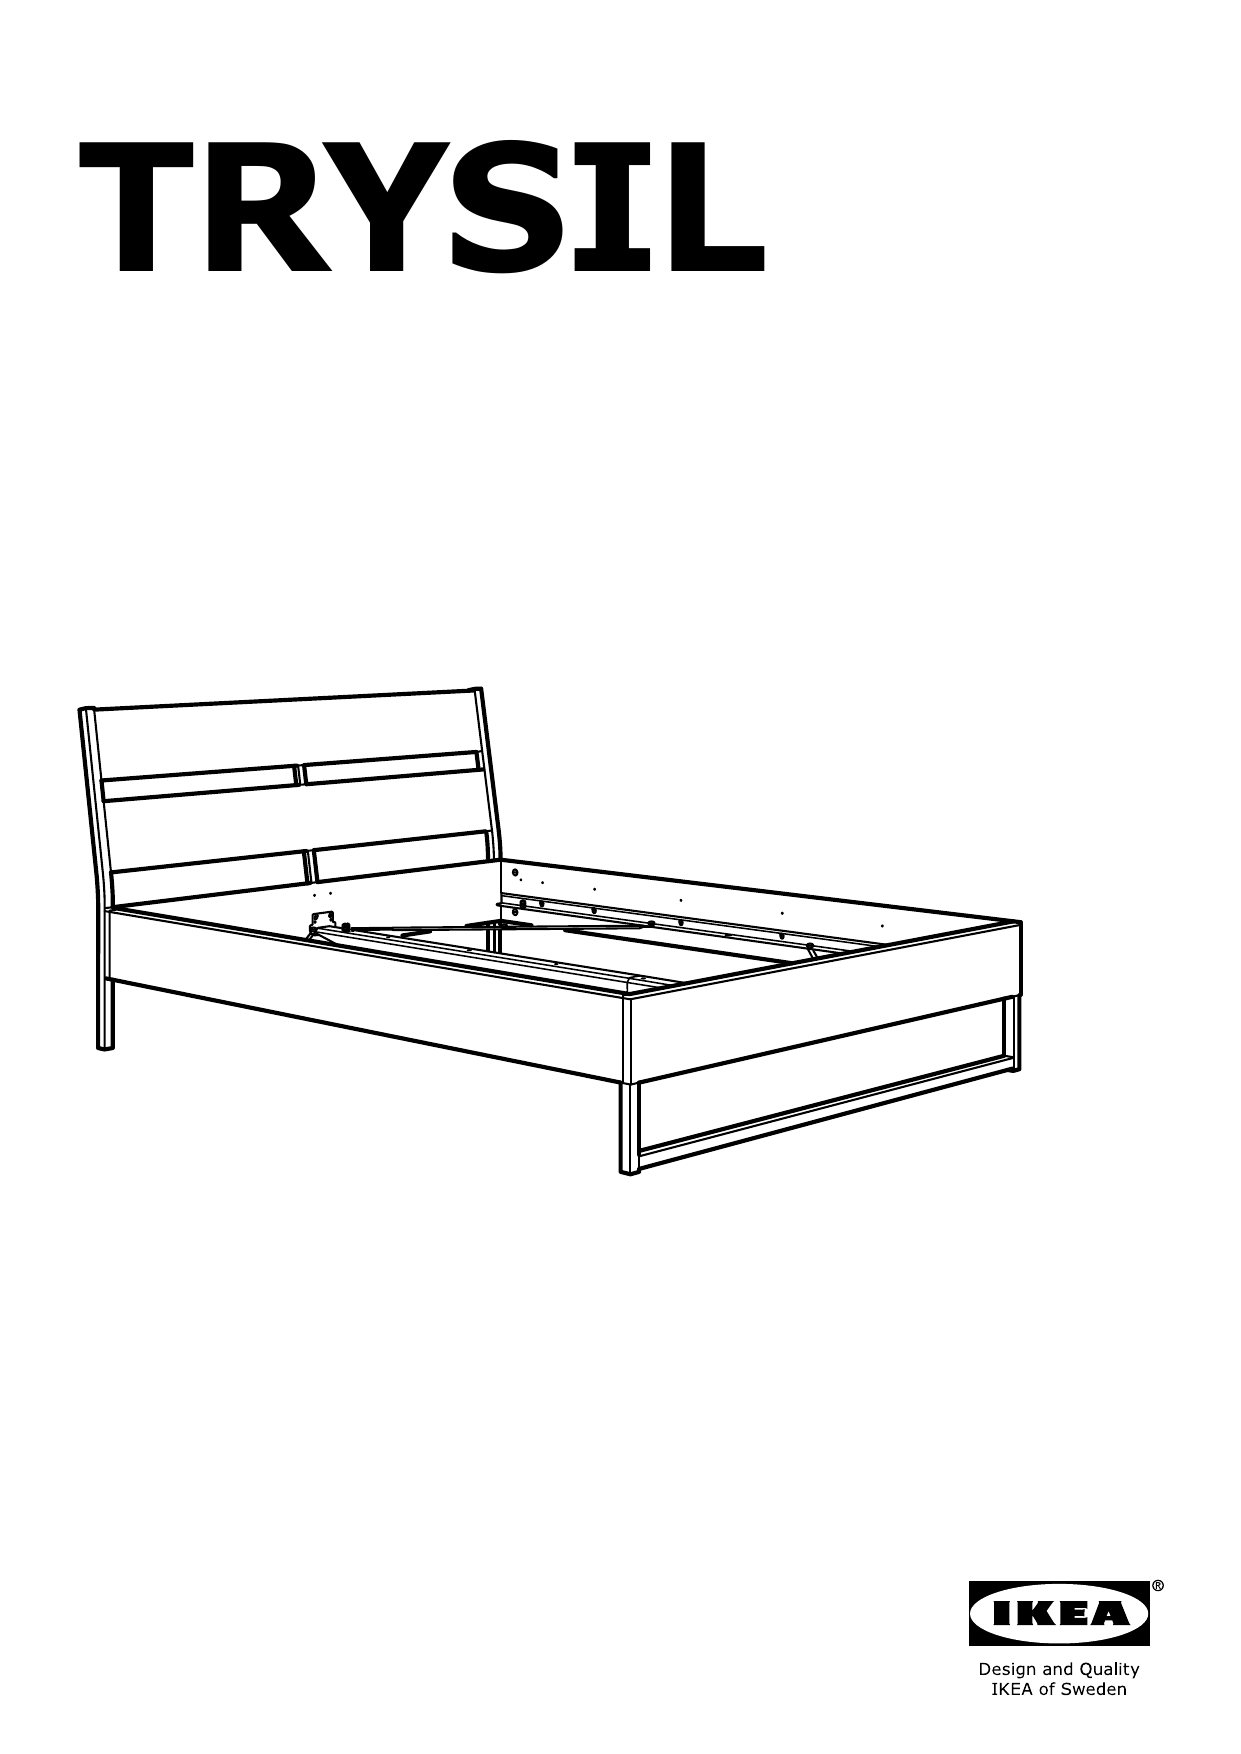 IKEA TRYSIL bed frame Assembly Instruction